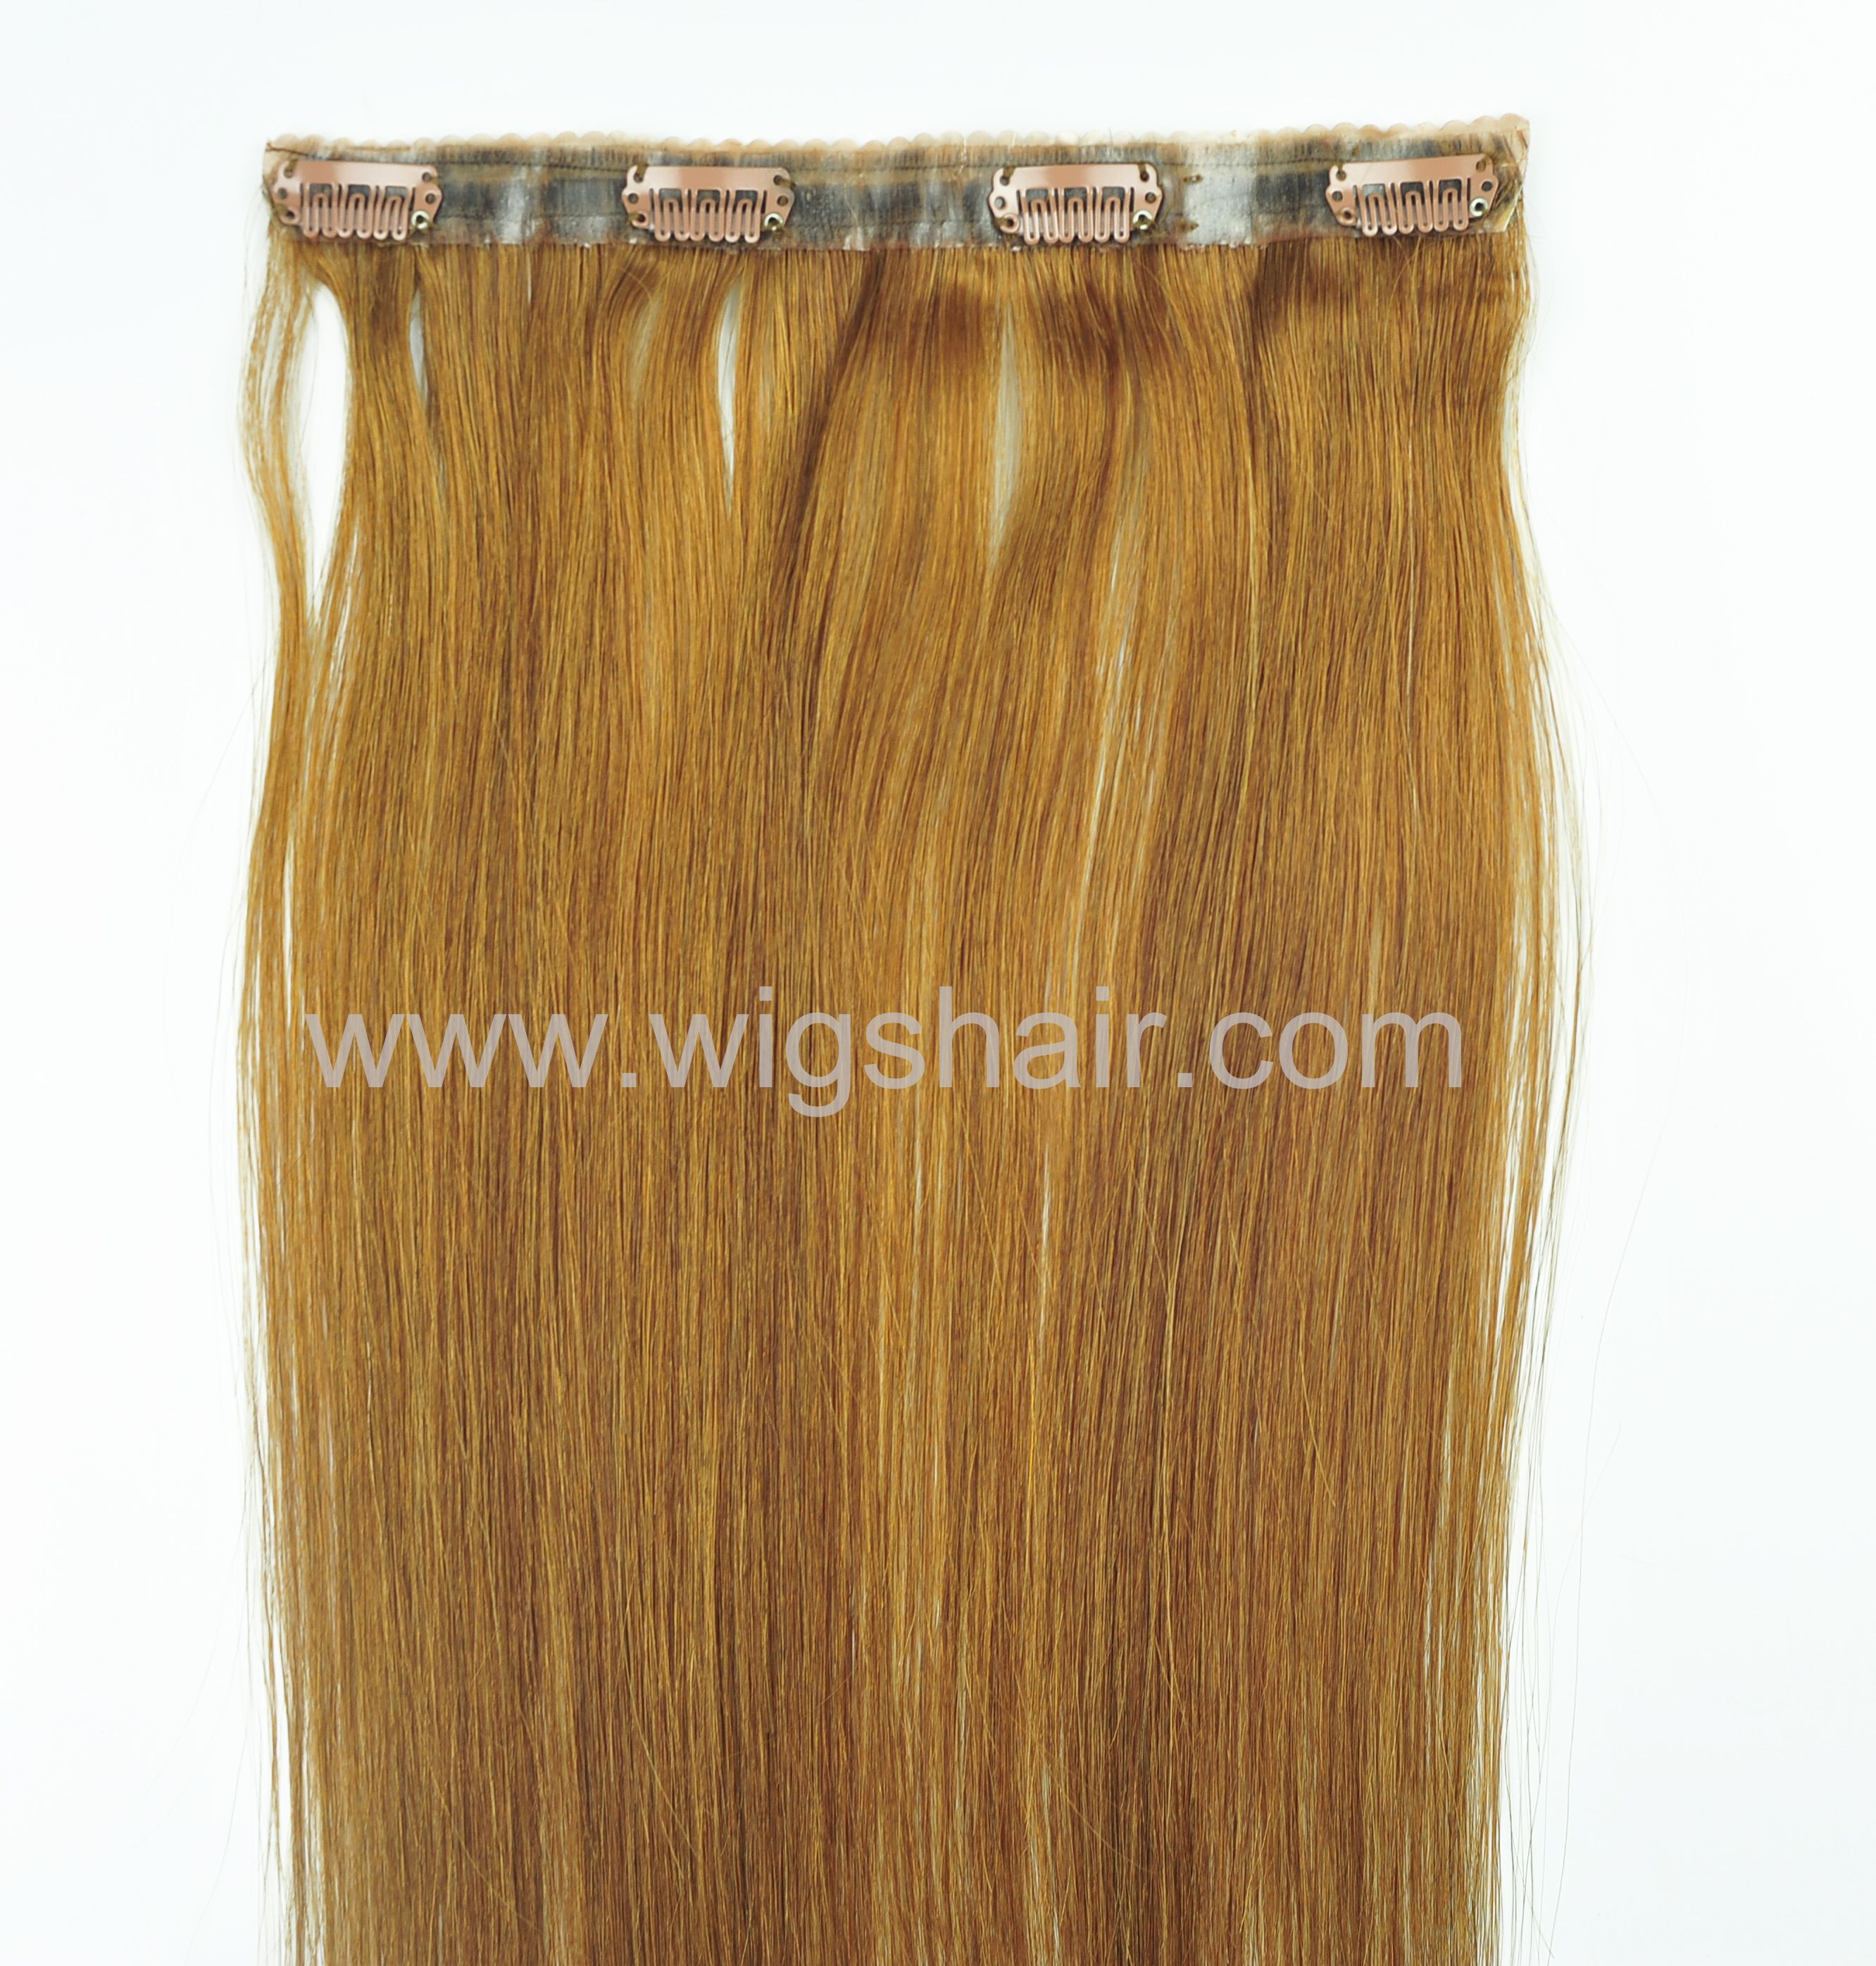 Super Thin Edge Seamless Clip In Extensionremy Hair 18 Ginger